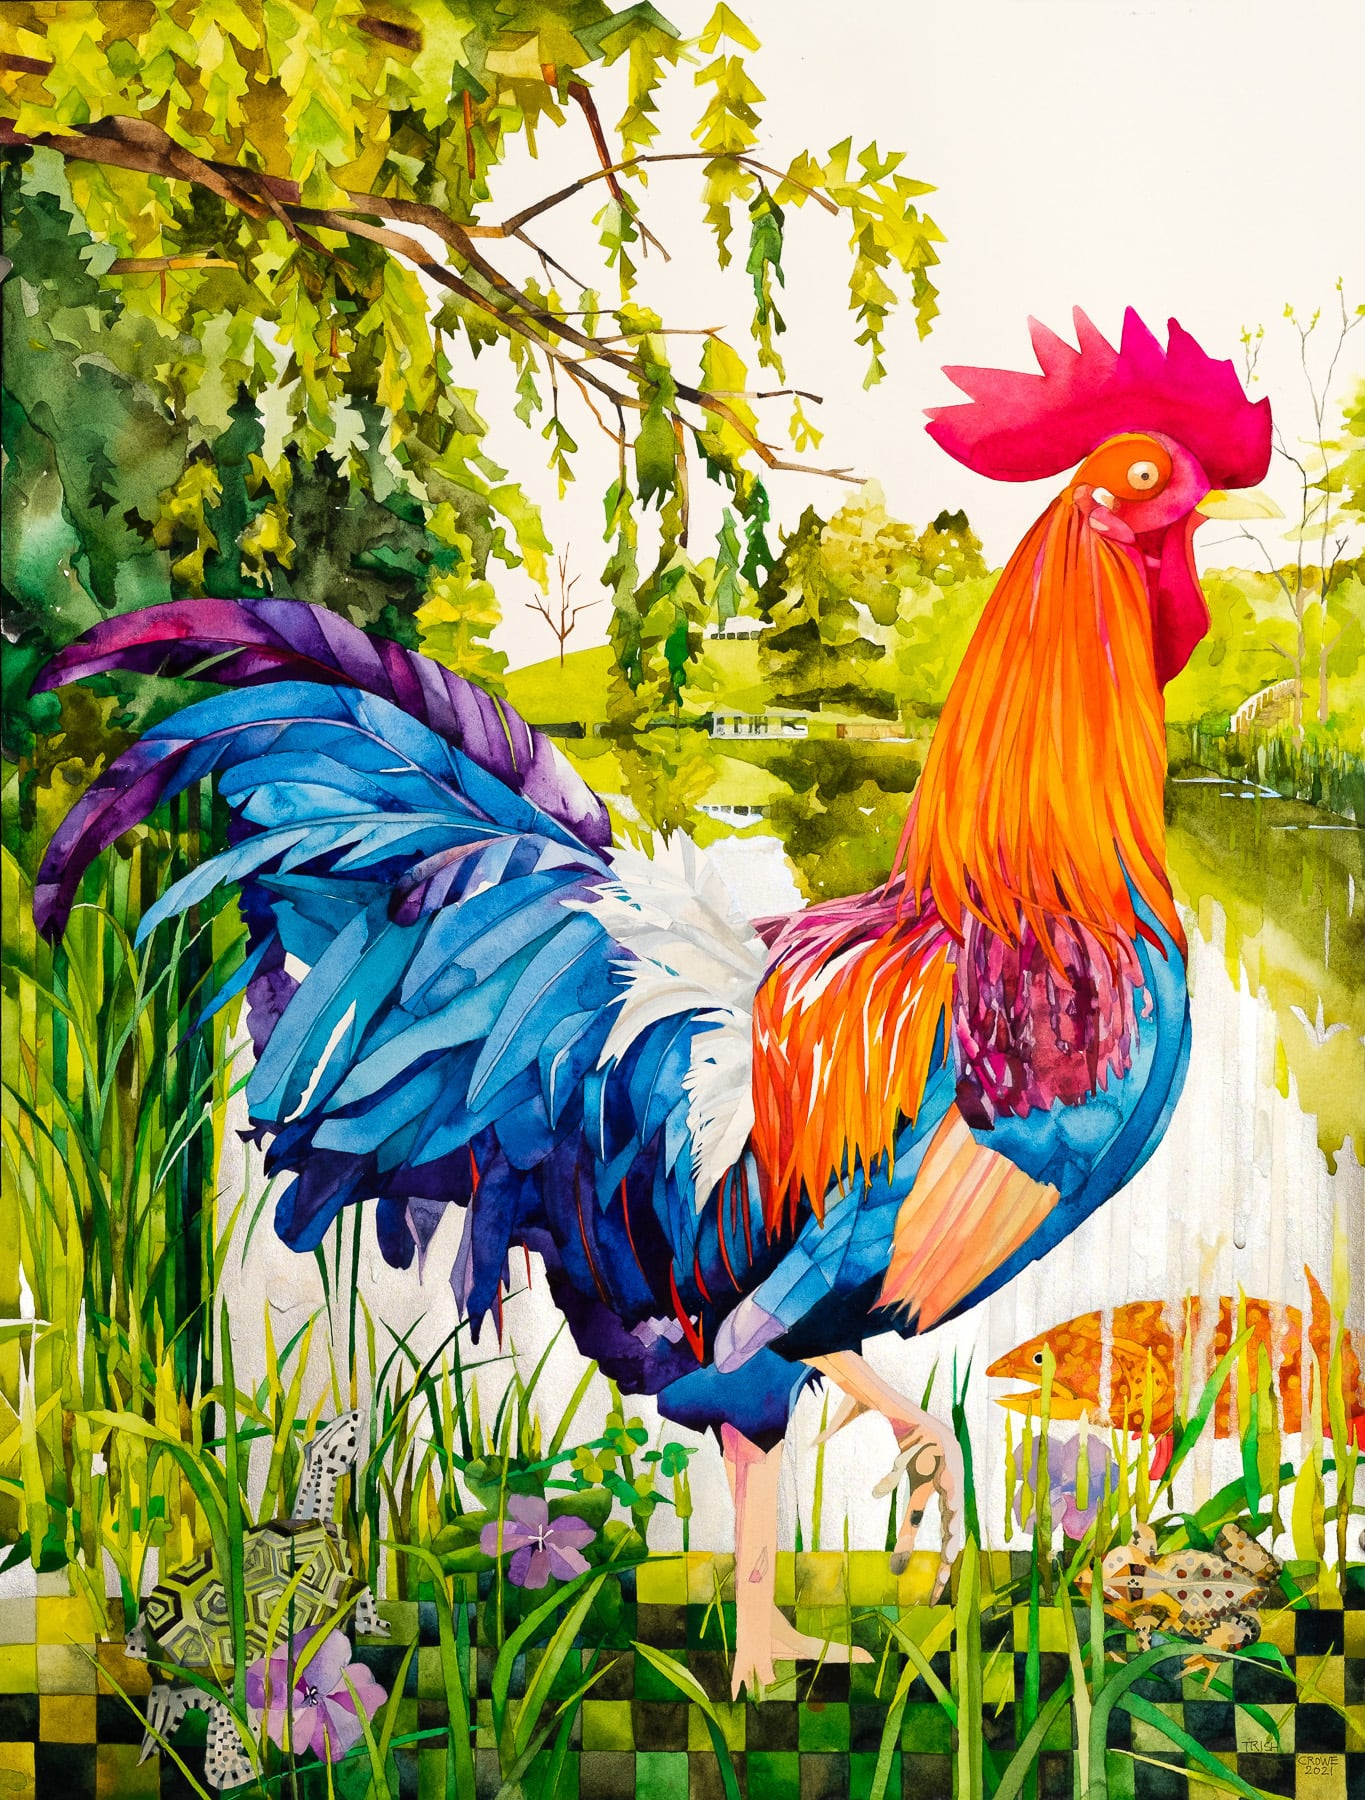 Firnew Rooster-Trish Crowe